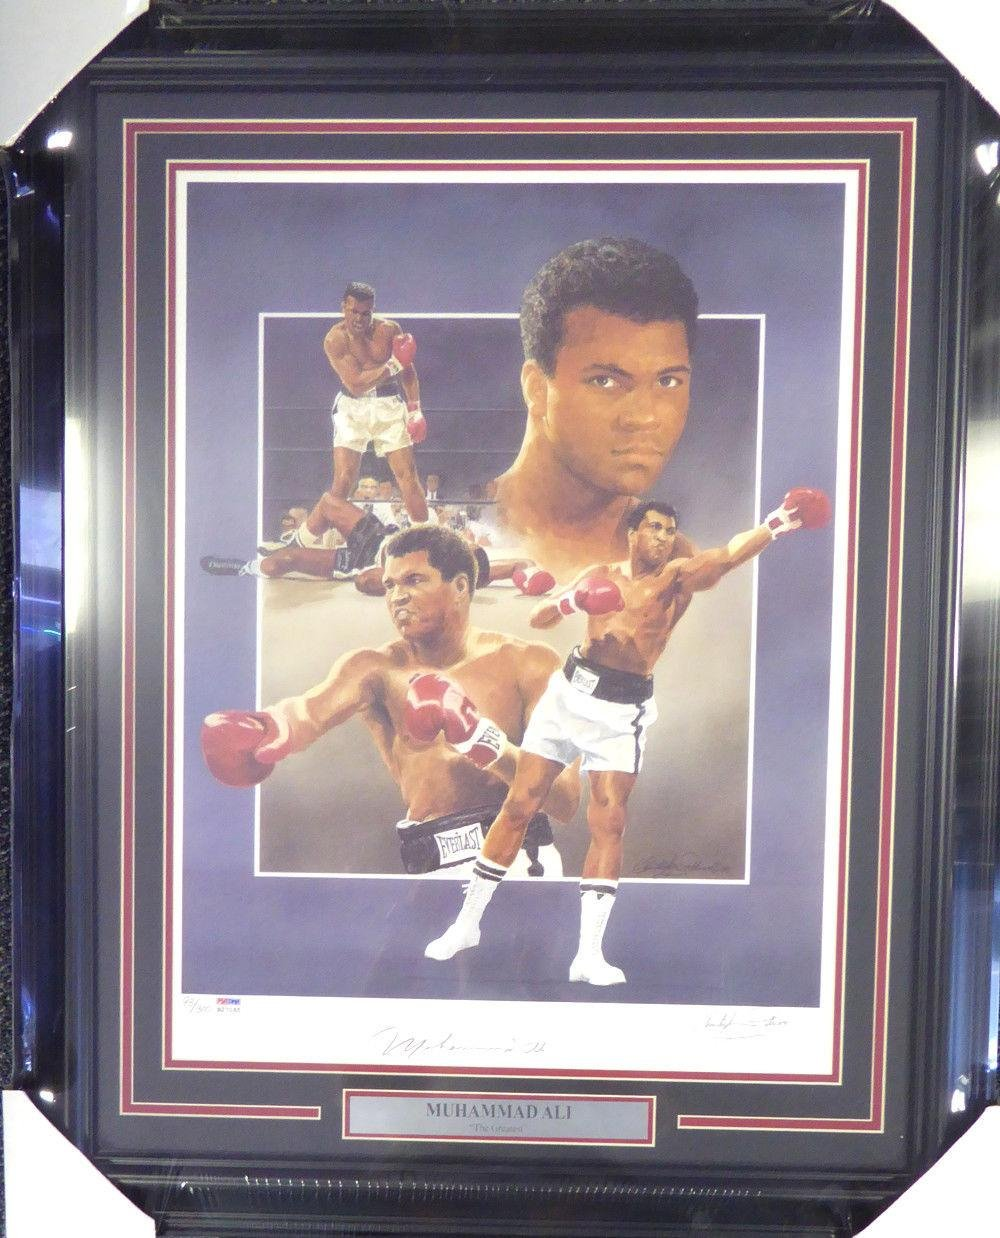 Muhammad Ali Autographed Framed 18x24 Lithograph Photo Auto Grade 10 B27065 PSA/DNA Certified Autographed Boxing Art